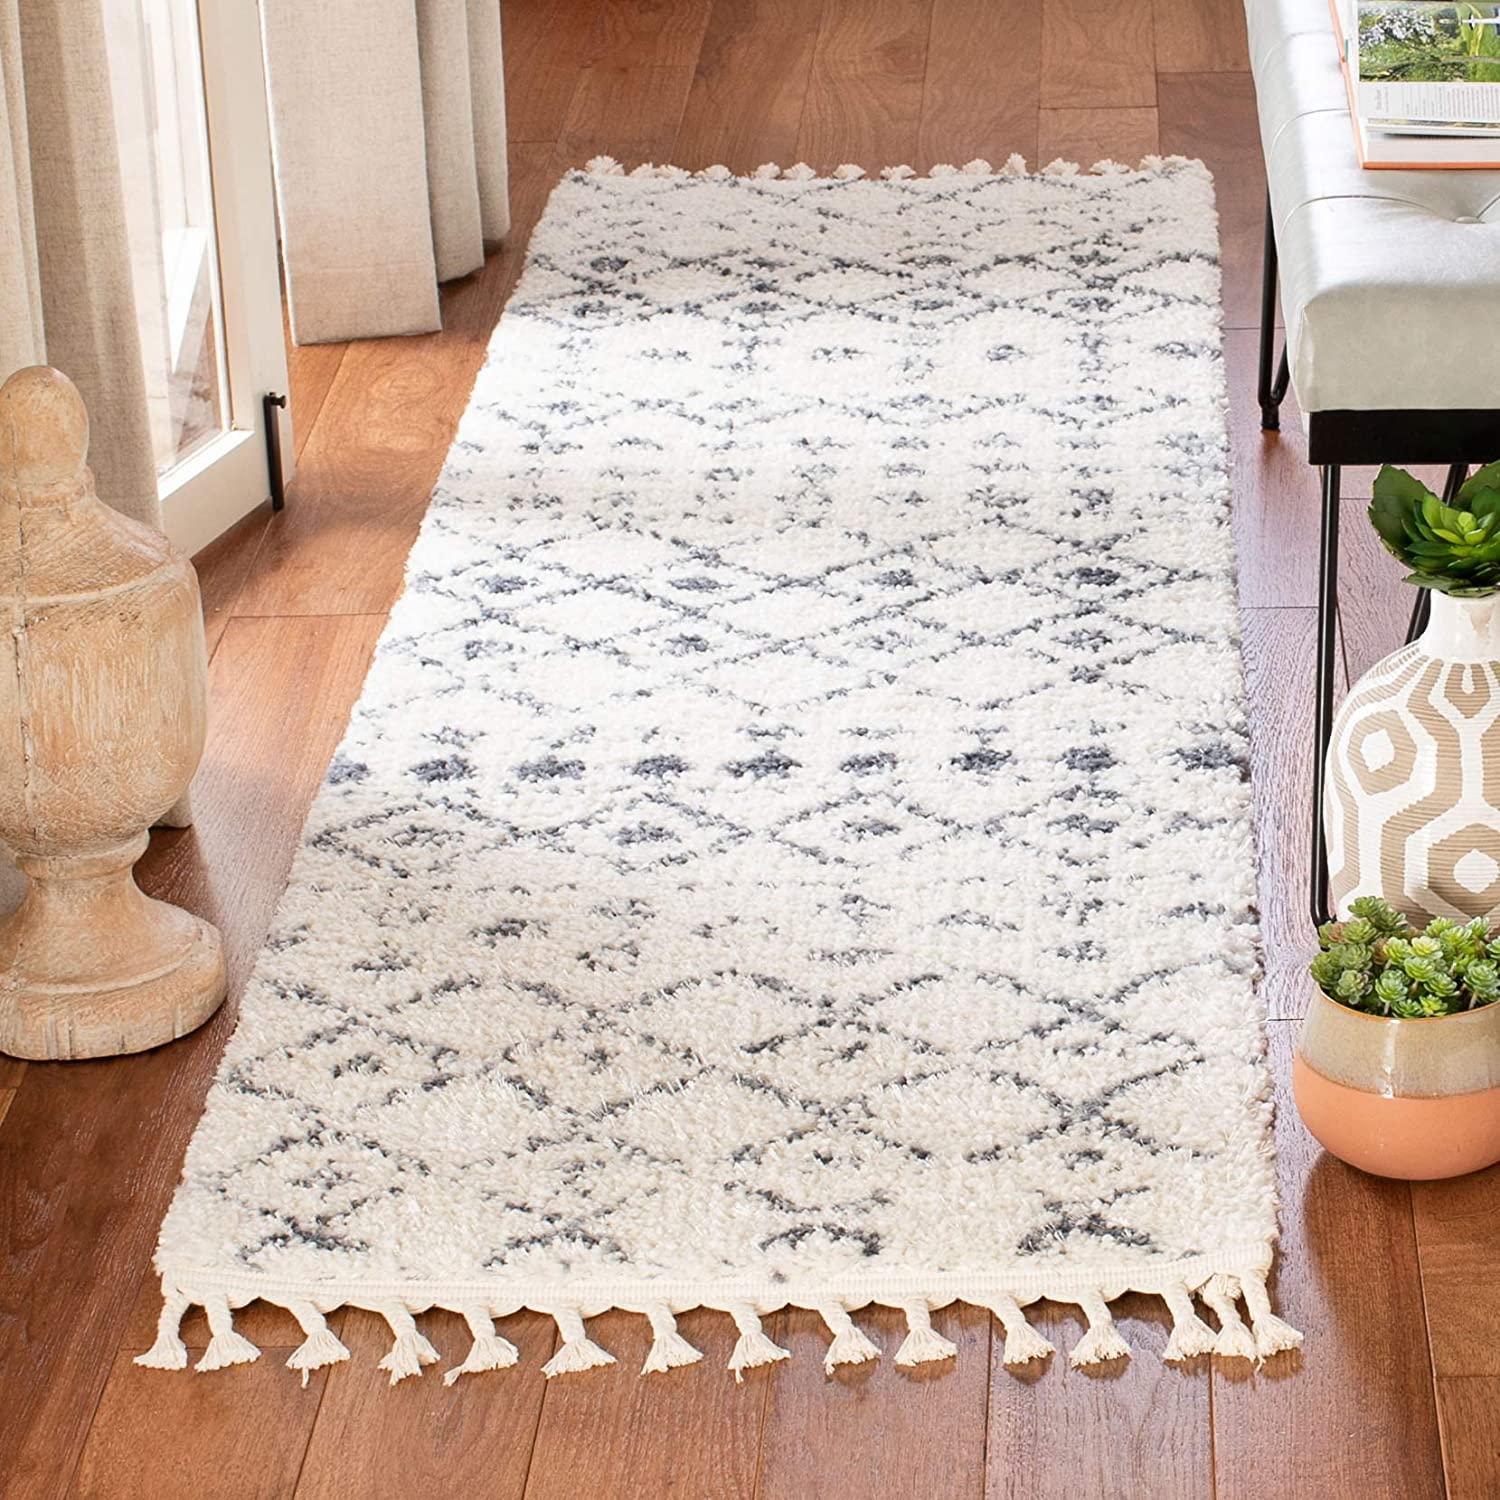 SAFAVIEH Berber Inexpensive Fringe Shag Moroccan 2021 new Non-Shed Collection BFG516A